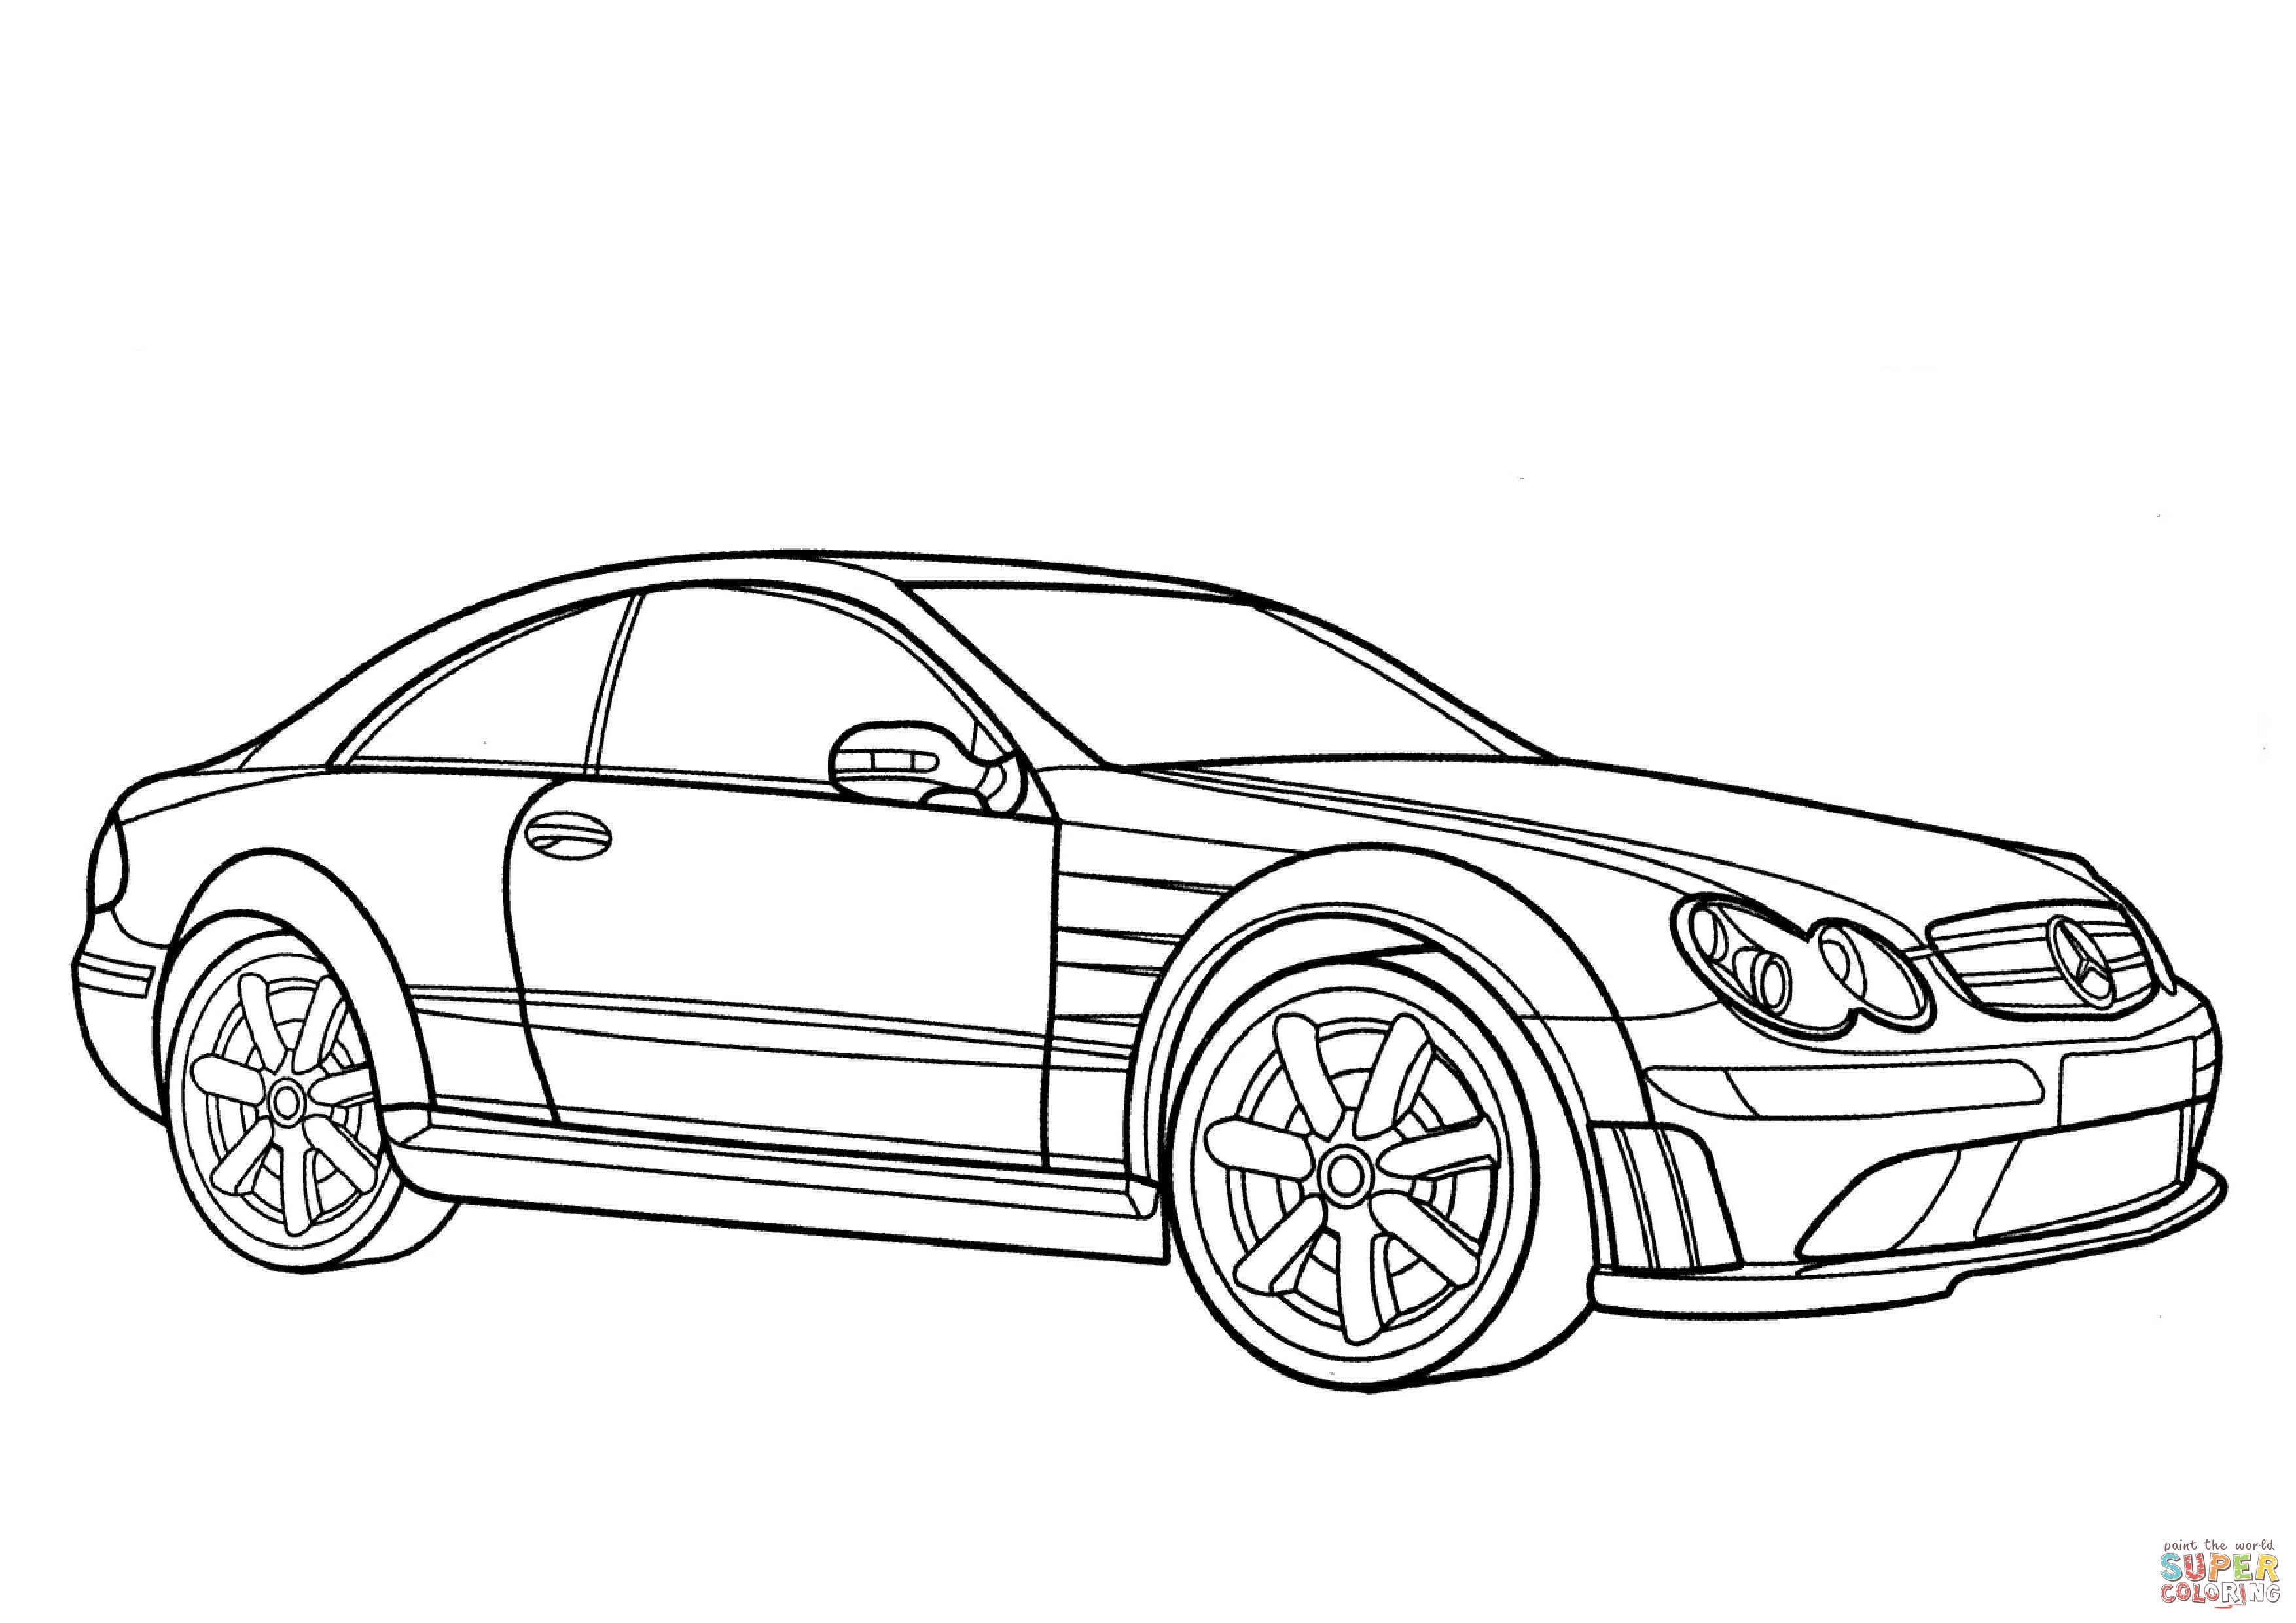 mercedes benz coloring sheets mercedes coloring pages coloring pages to download and print coloring sheets mercedes benz